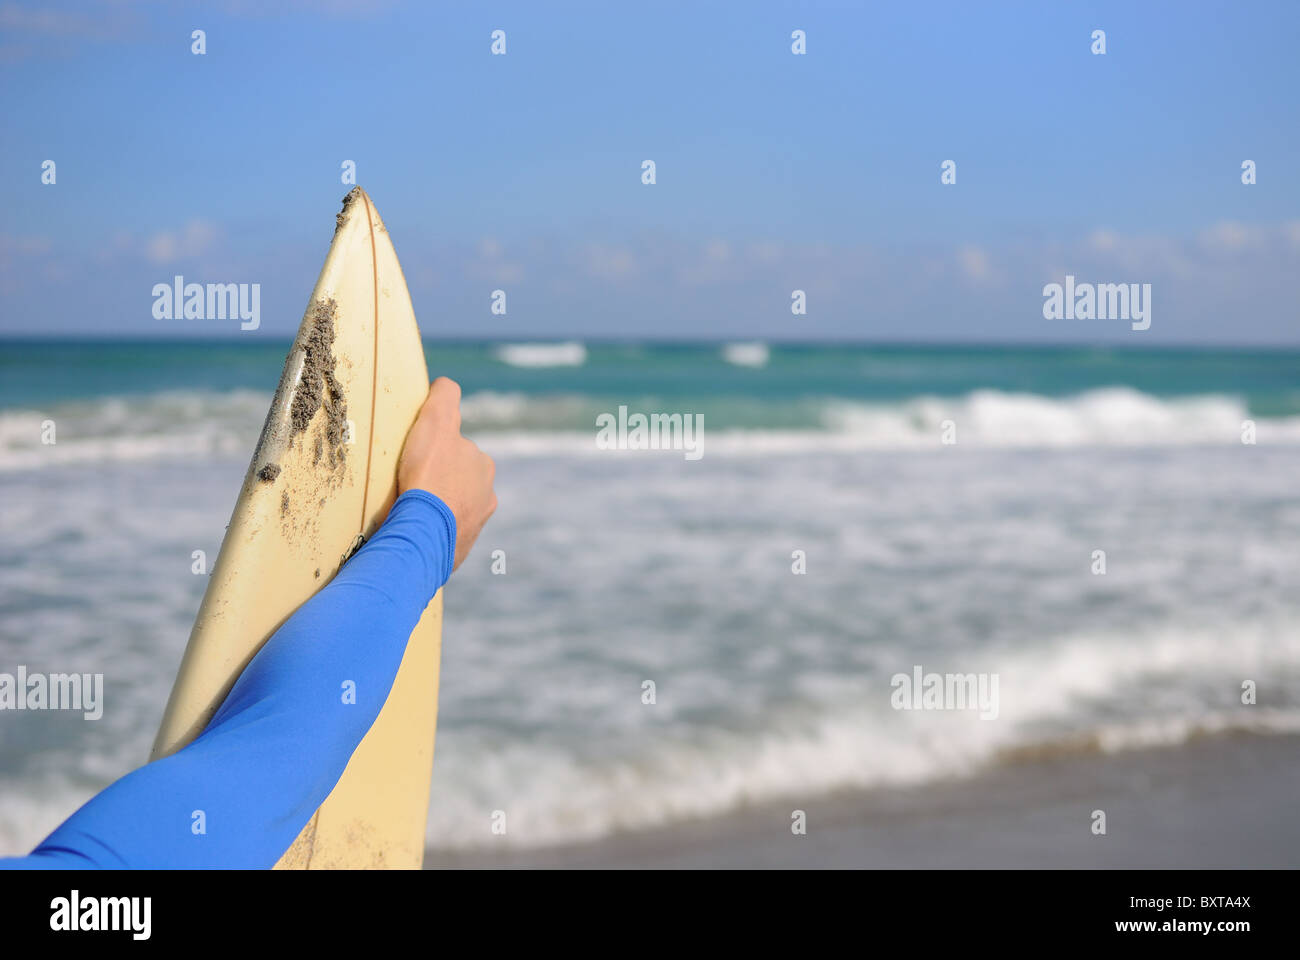 Surfer holding his board Photo Stock